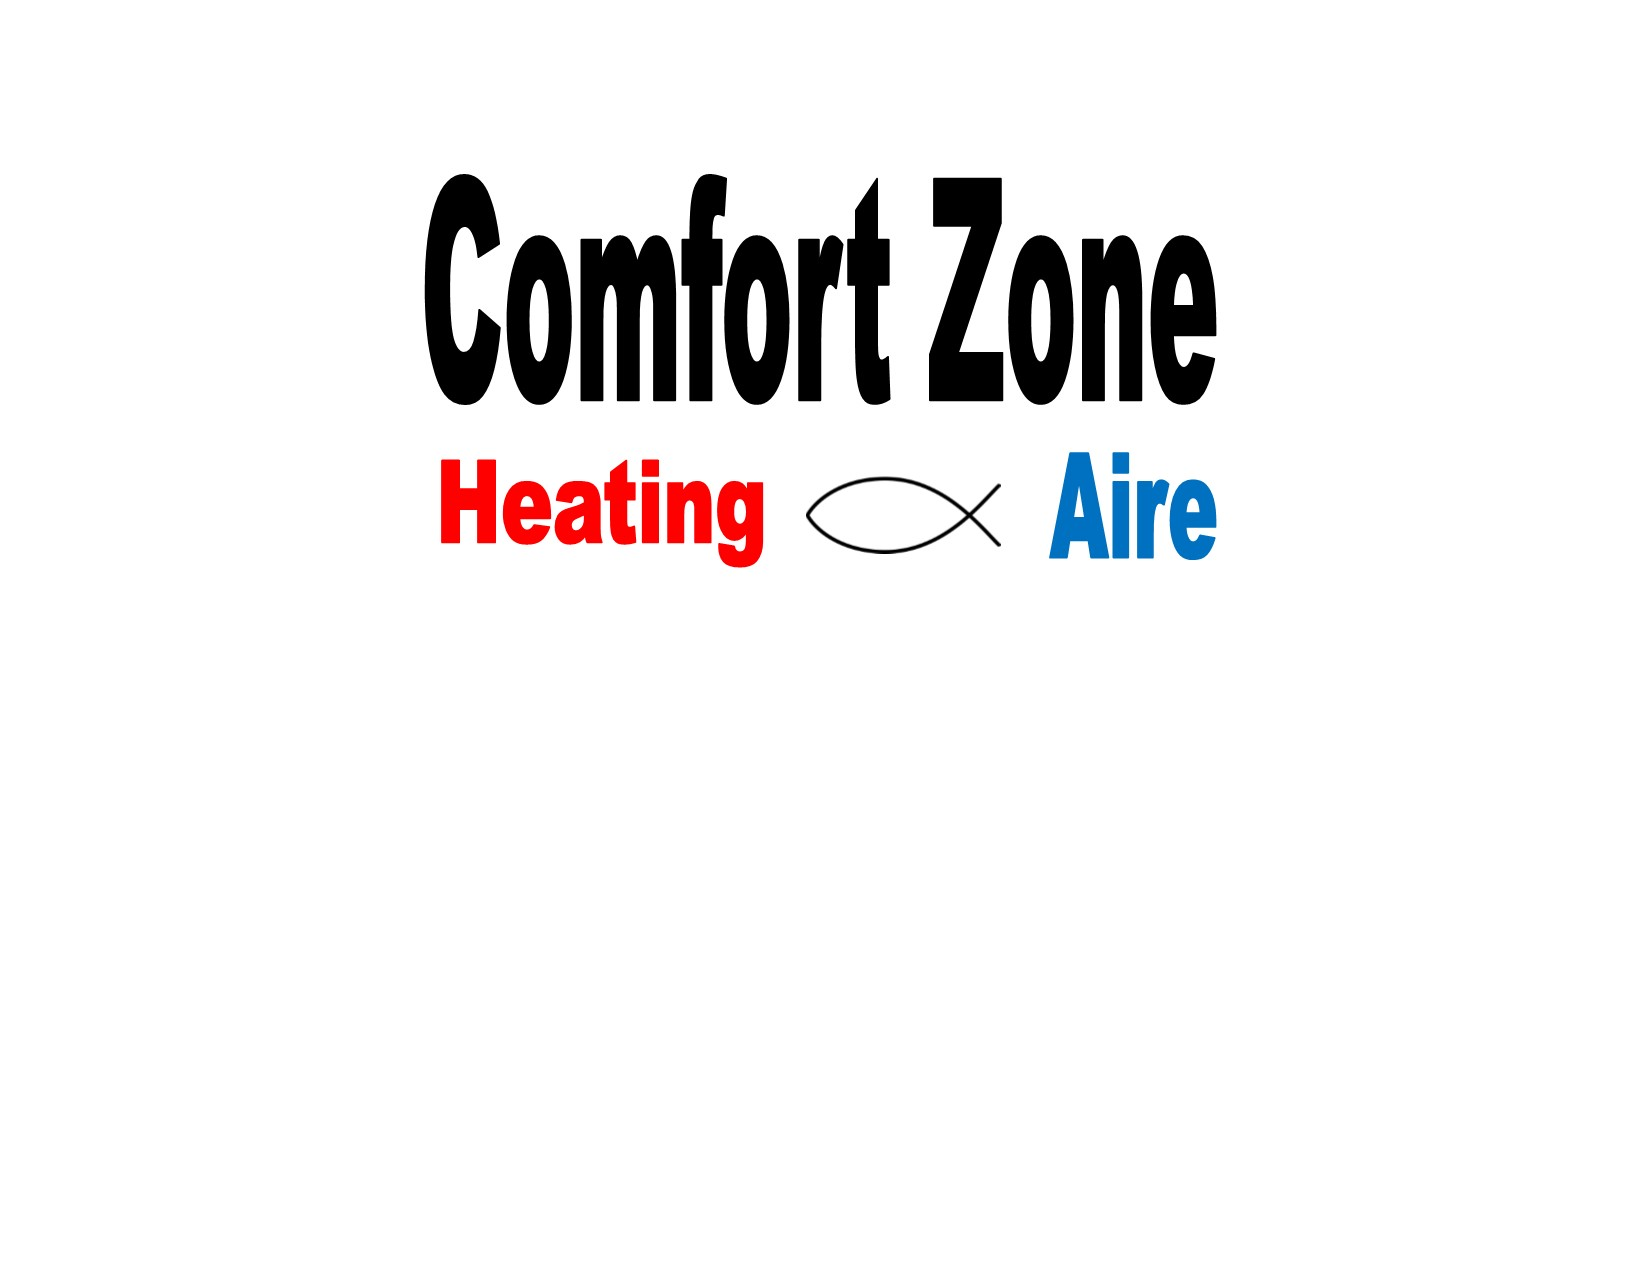 Comfort Zone Heating & Aire